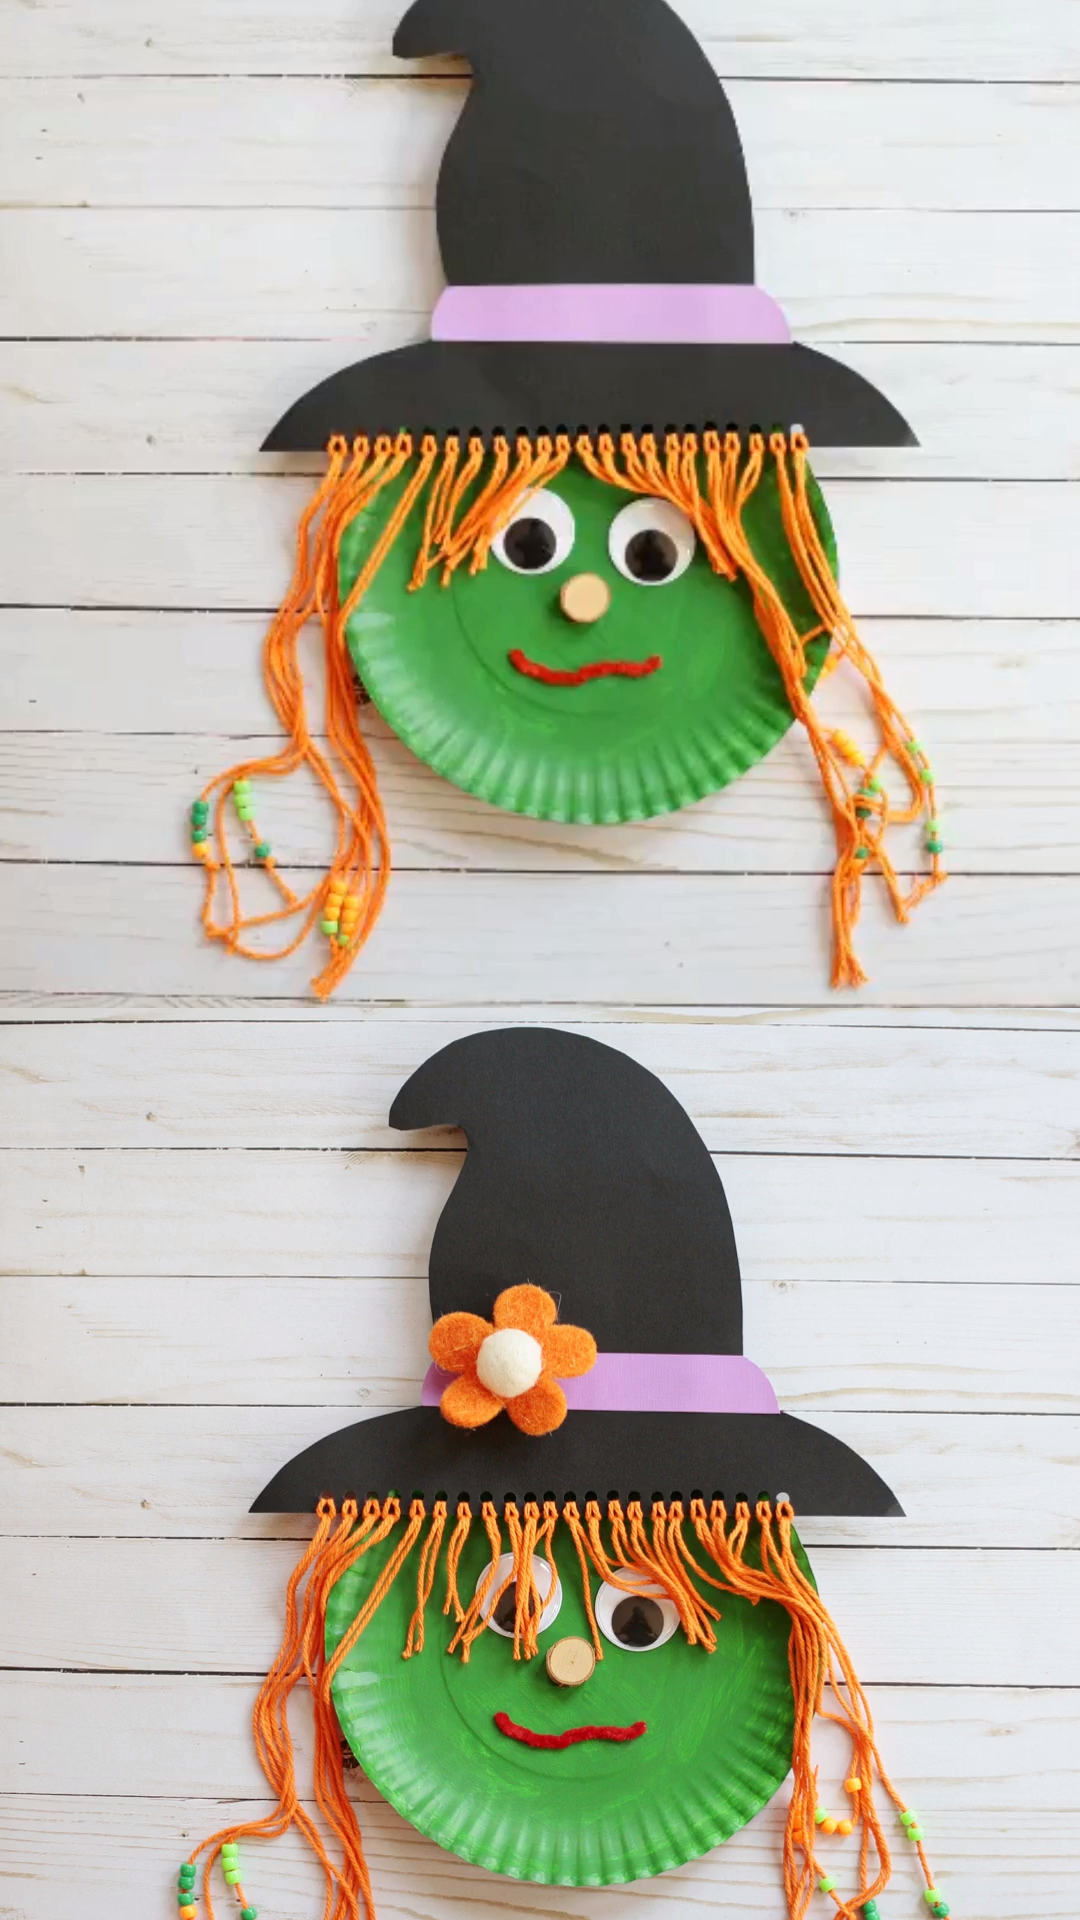 Paper plate witch craft for kids #easycrafts